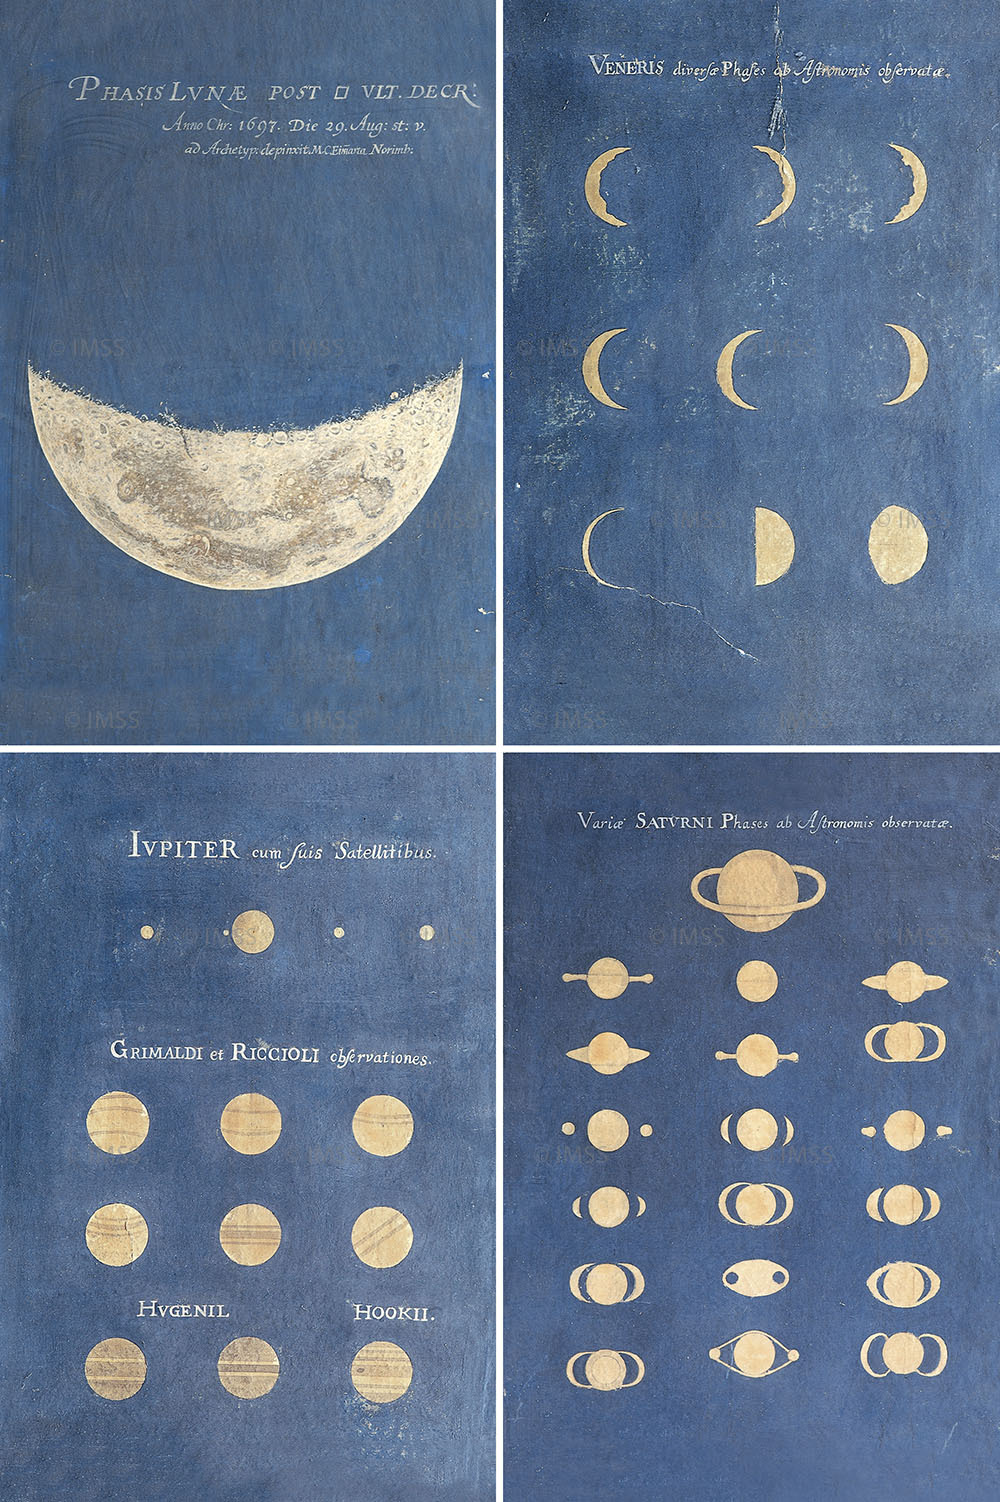 elliesmallz:   Phase Of The Moon. Phases of Venus. Aspect Of Jupiter. Aspect of Saturn. Late 17th century - Bologna, Museo della Specola, Universita di Bologna.